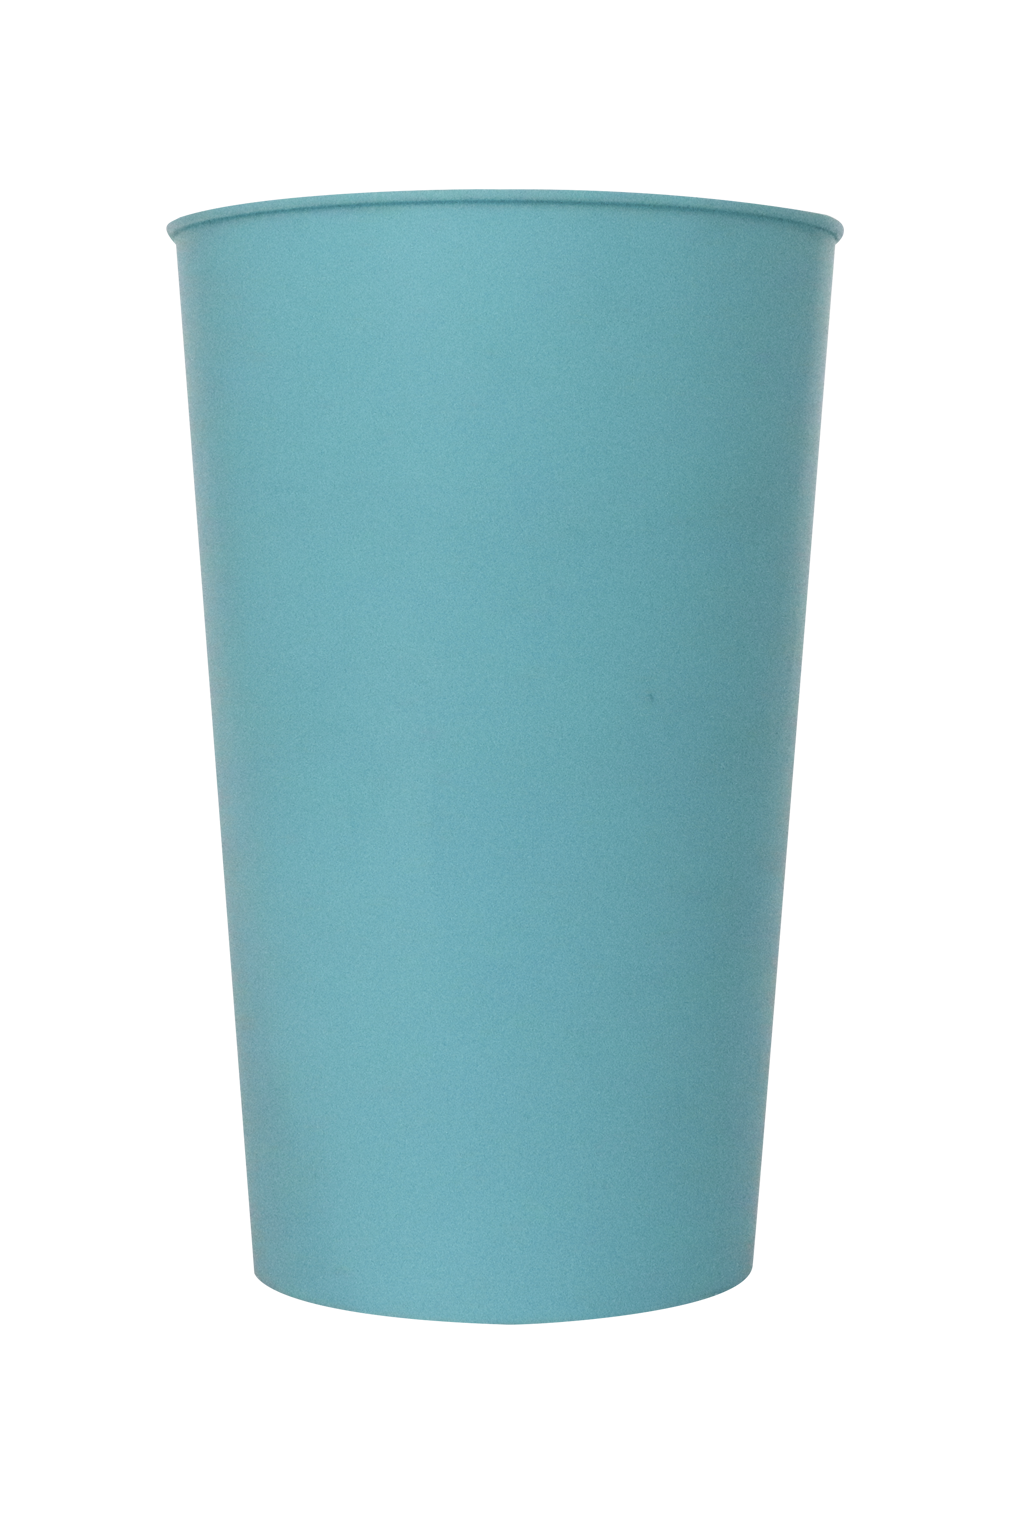 Copo Label 550ml - Unicórnio - Copo azul tiffany liso